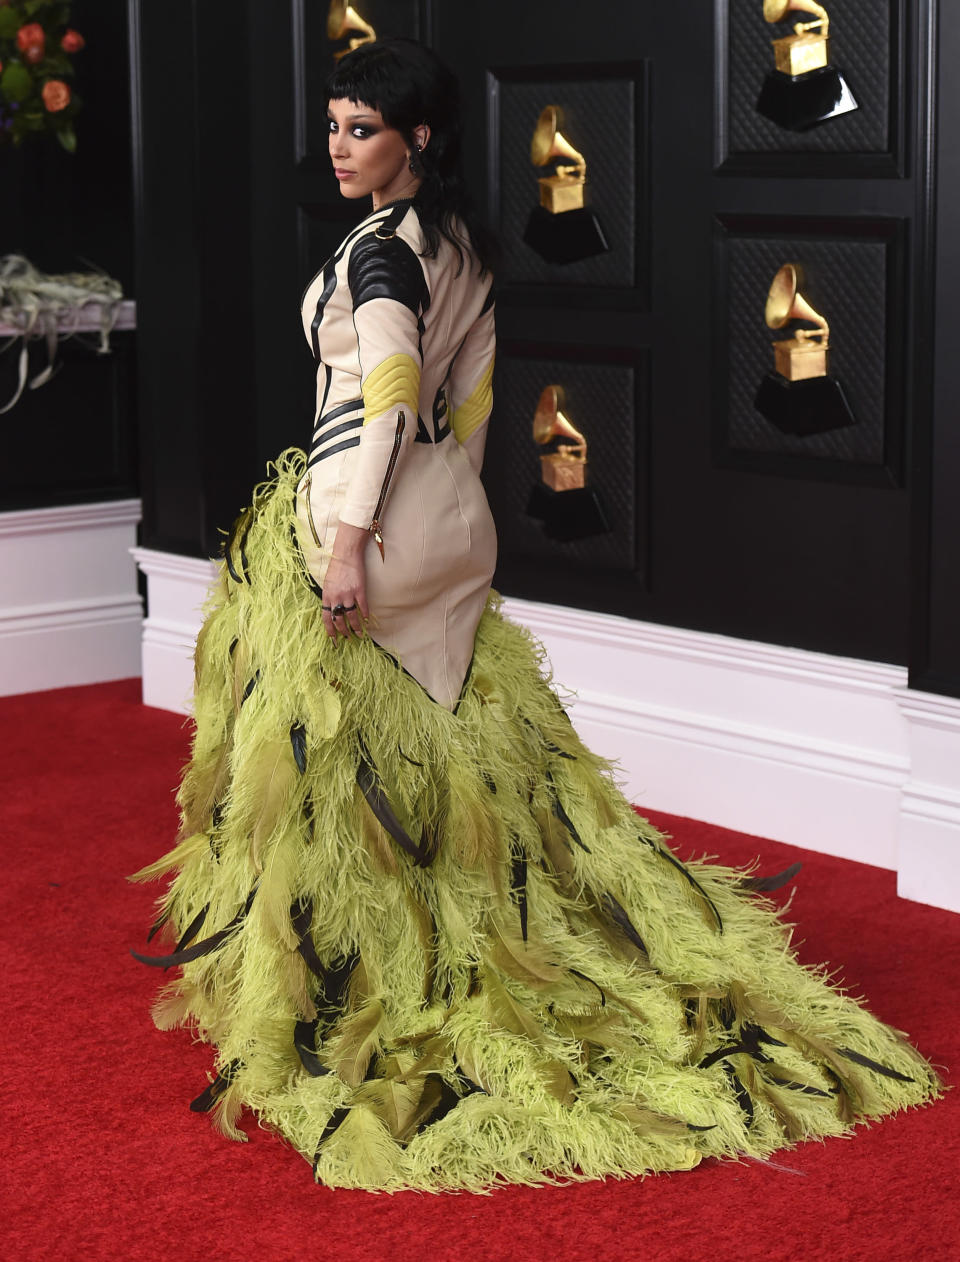 Doja Cat arrives at the 63rd annual Grammy Awards at the Los Angeles Convention Center on Sunday, March 14, 2021. (Photo by Jordan Strauss/Invision/AP)